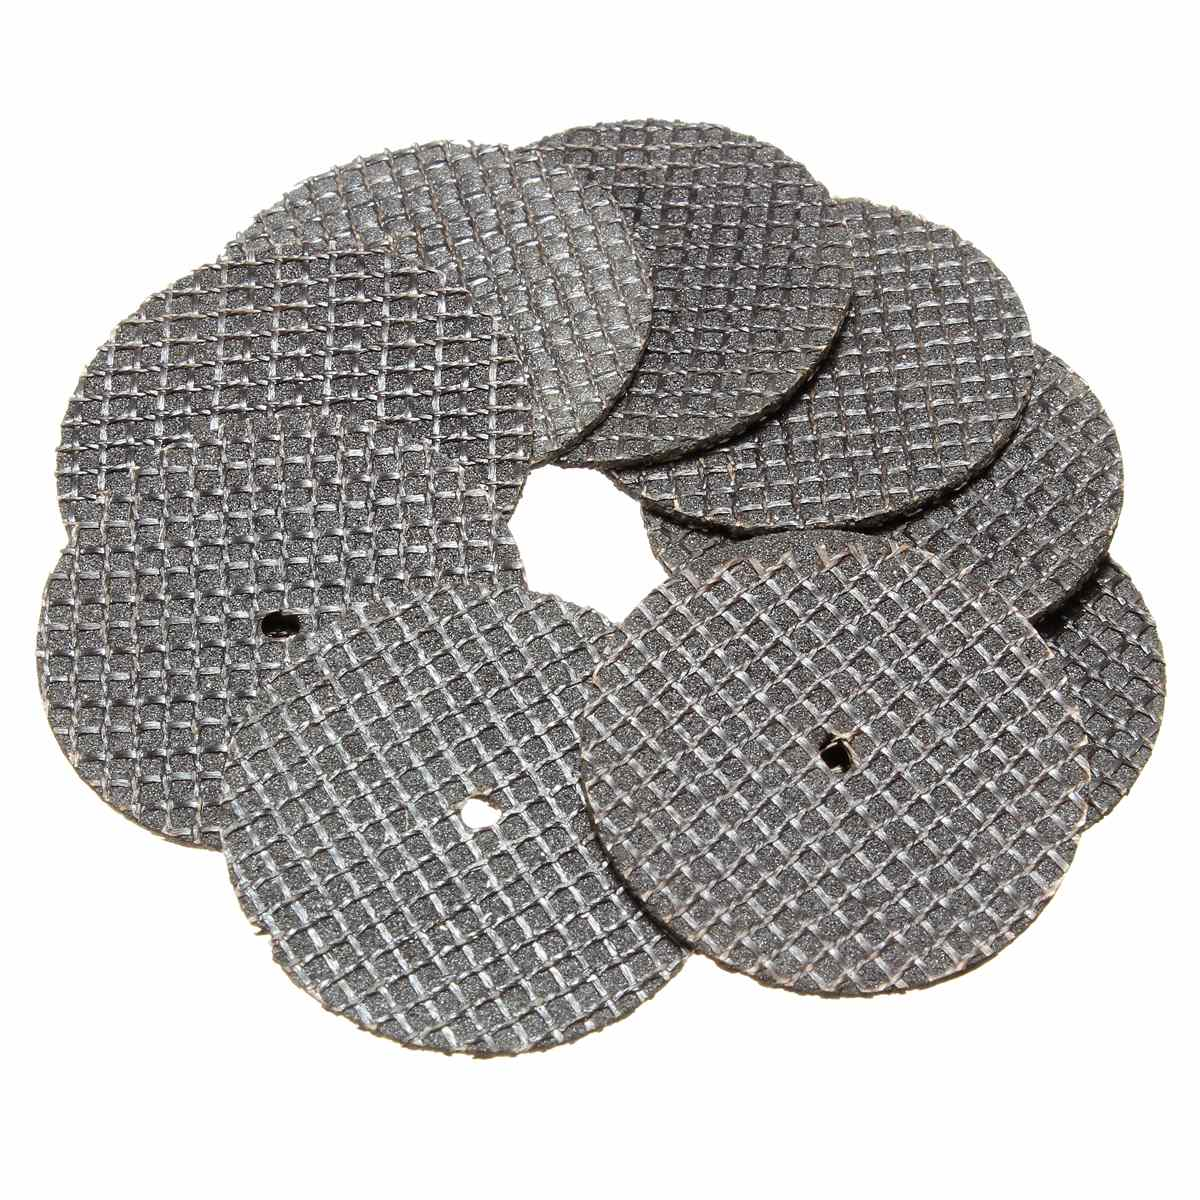 10Pcs 32mm Resin Fiber Metal Cutting Disc Circular Saw Blade Dremel Wheel Cutting Sanding Disc For Dremel Grinder Rotary Tools